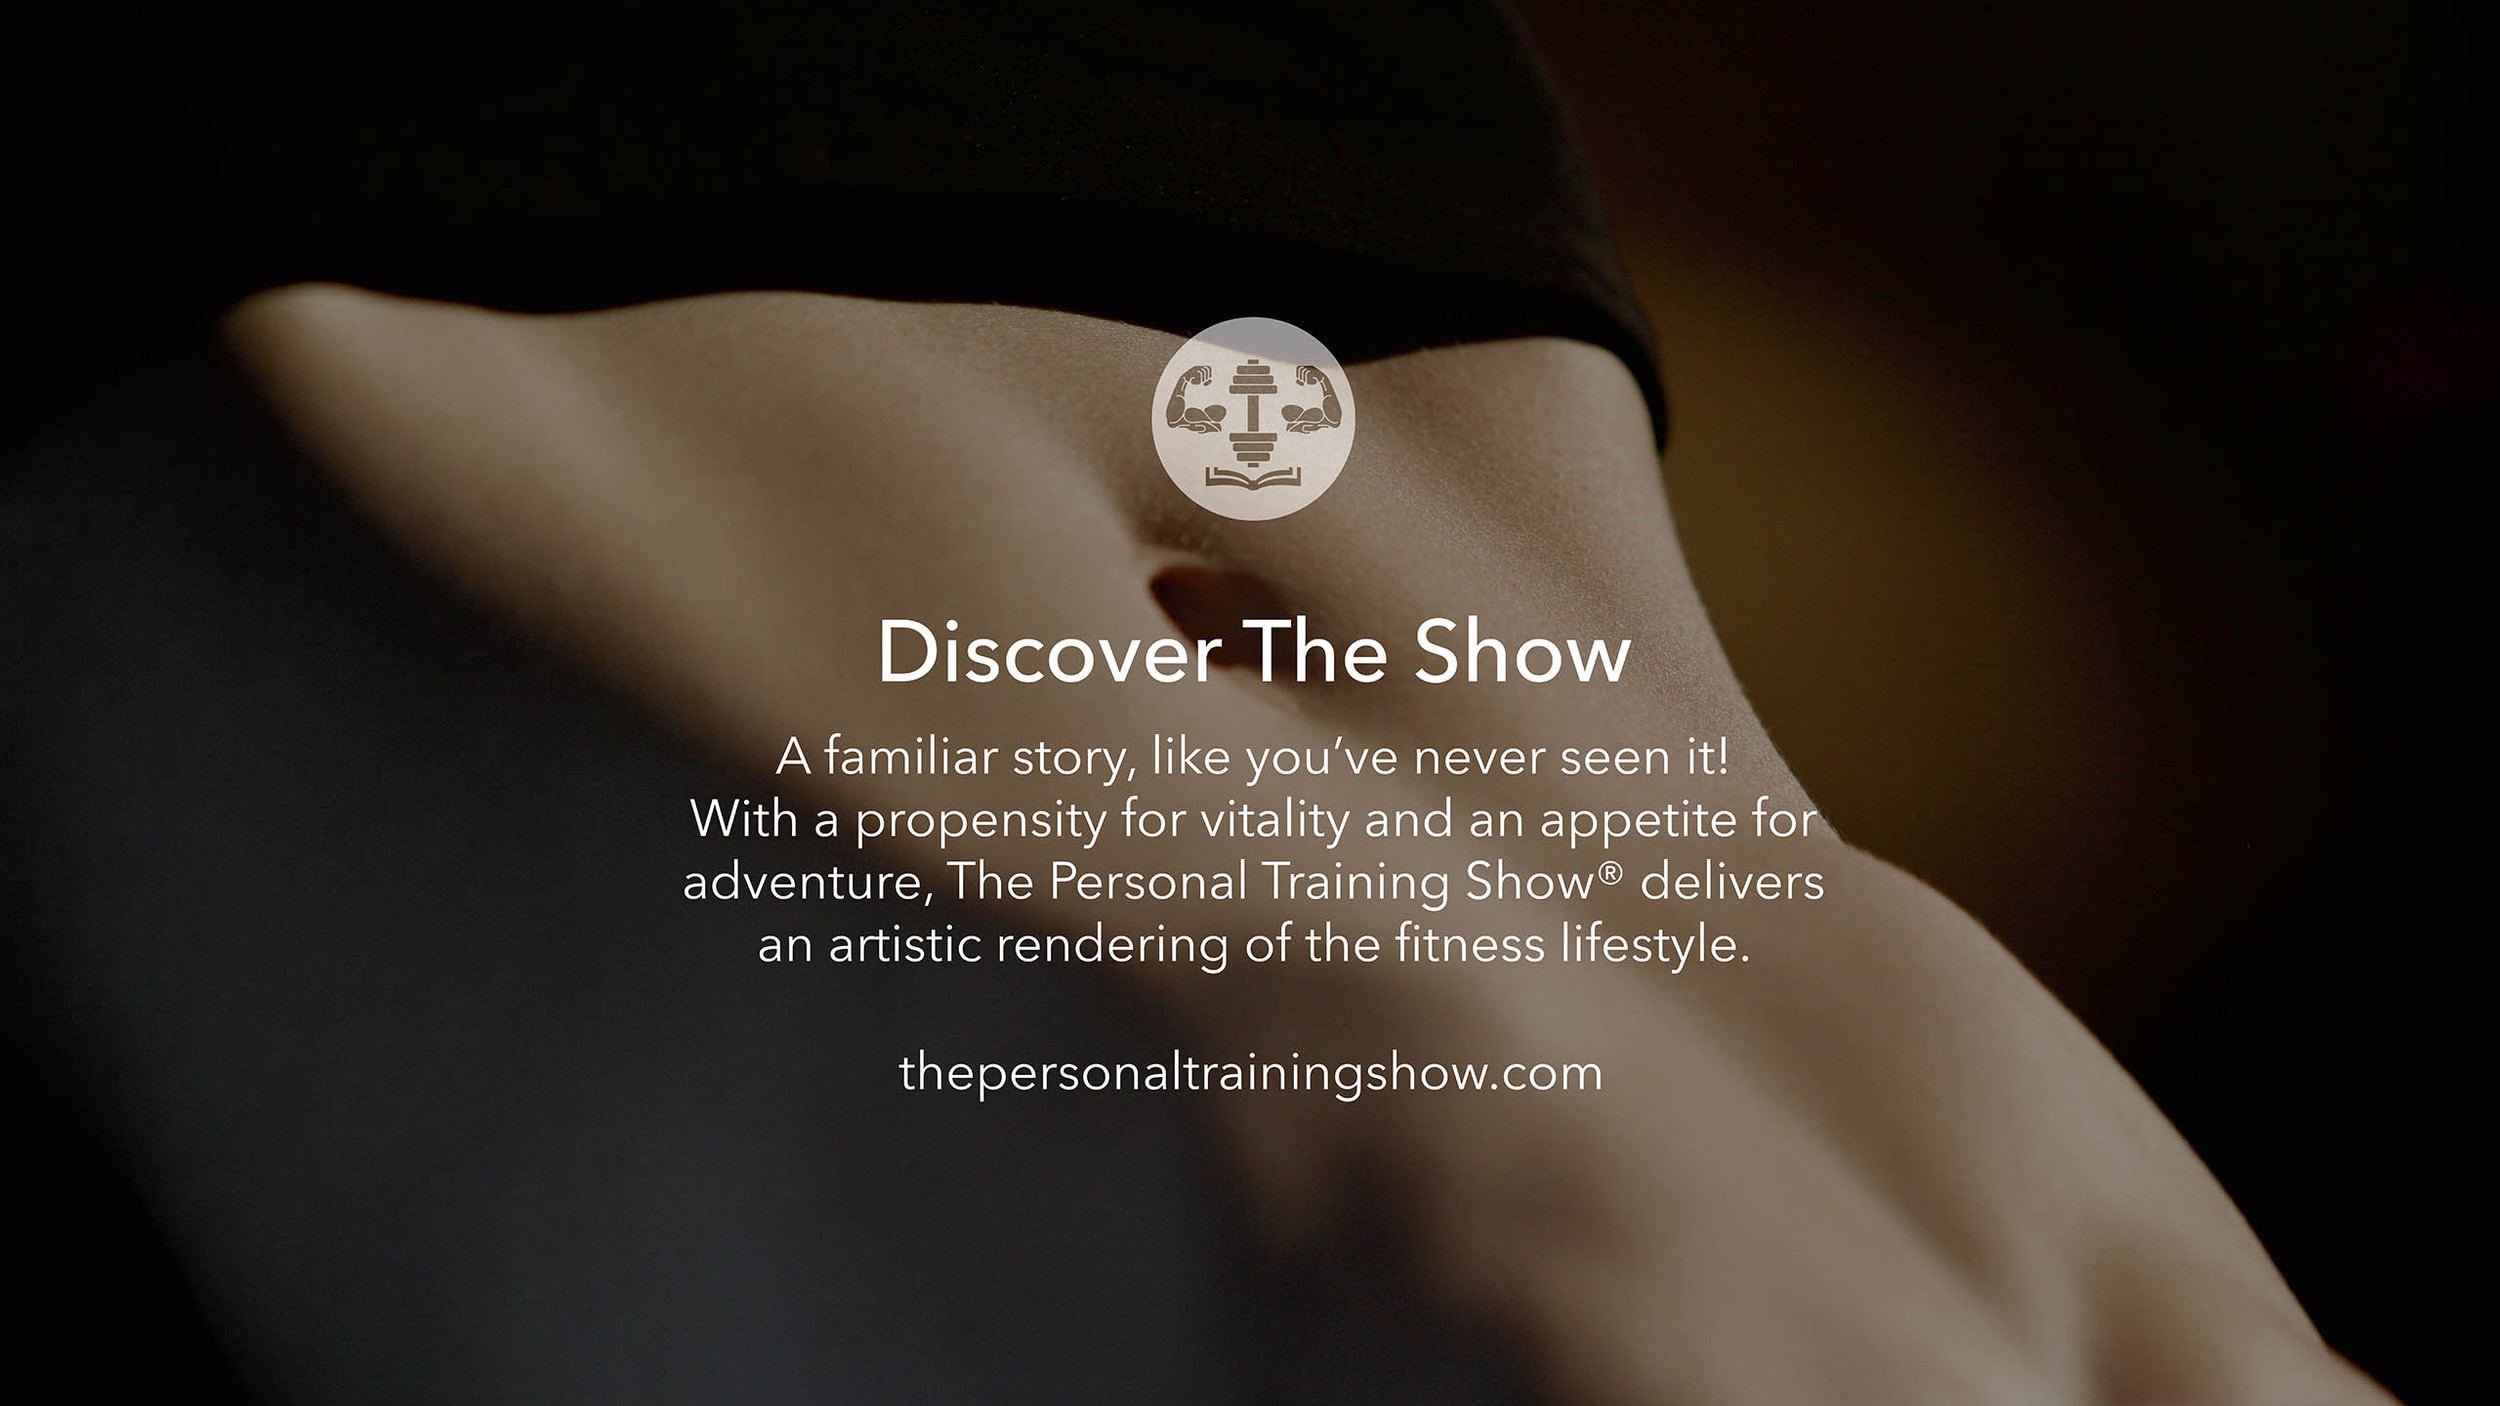 Discover The Show